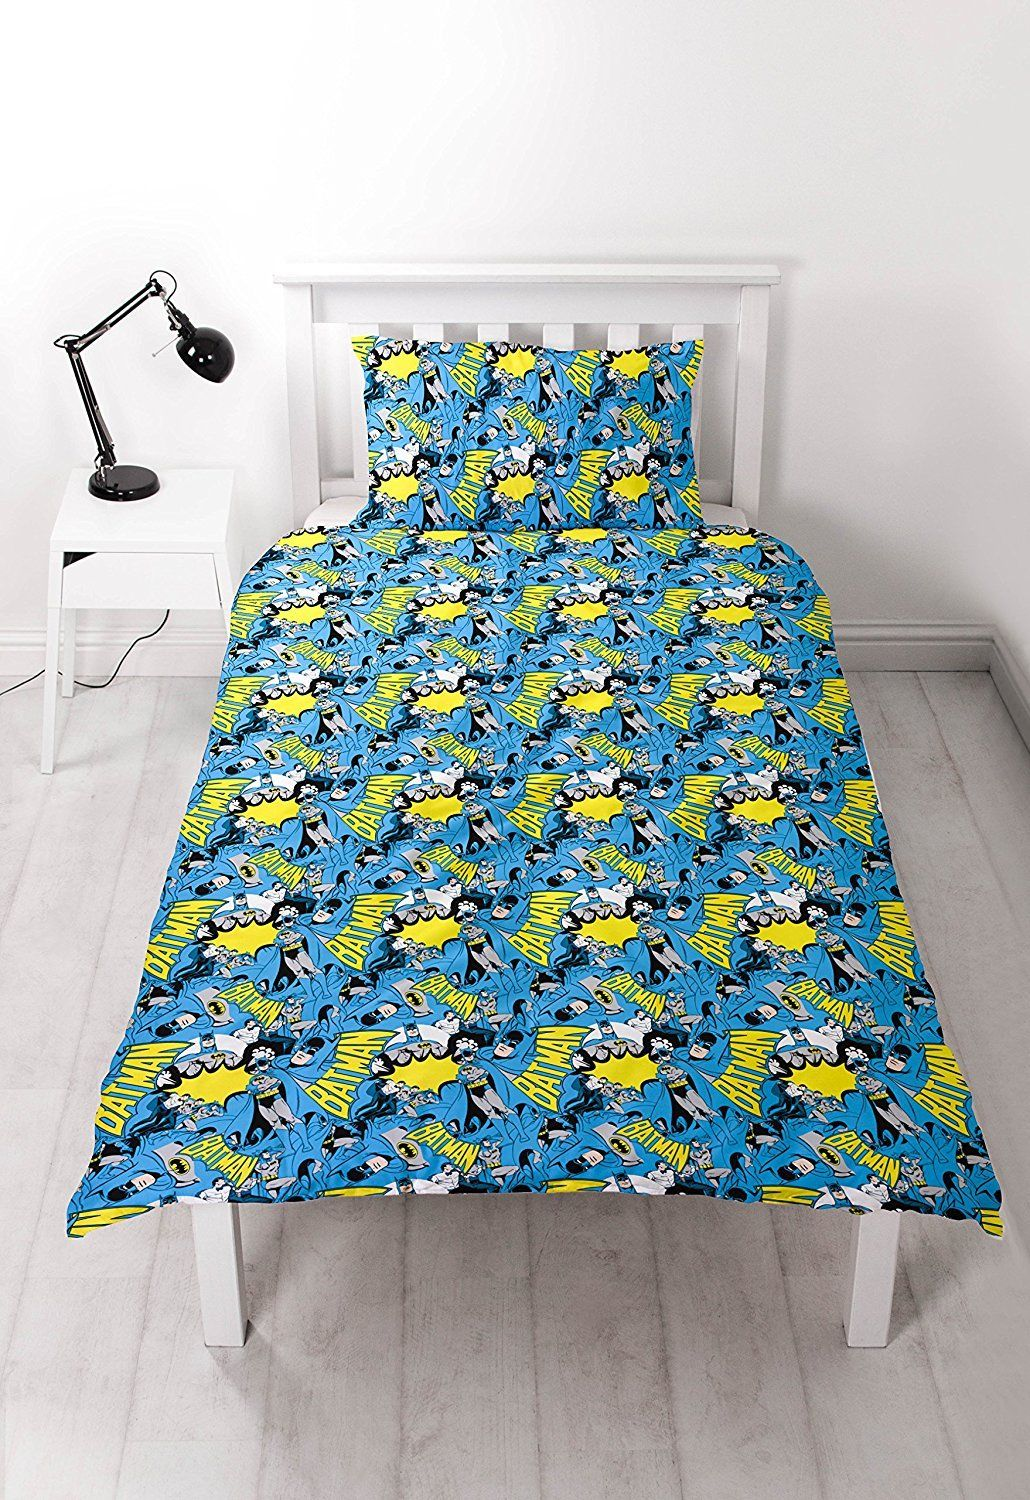 Childrens-Characters-Single-Bed-Quilt-Duvet-Cover-amp-Pillowcase-Kids-Bedding-Set